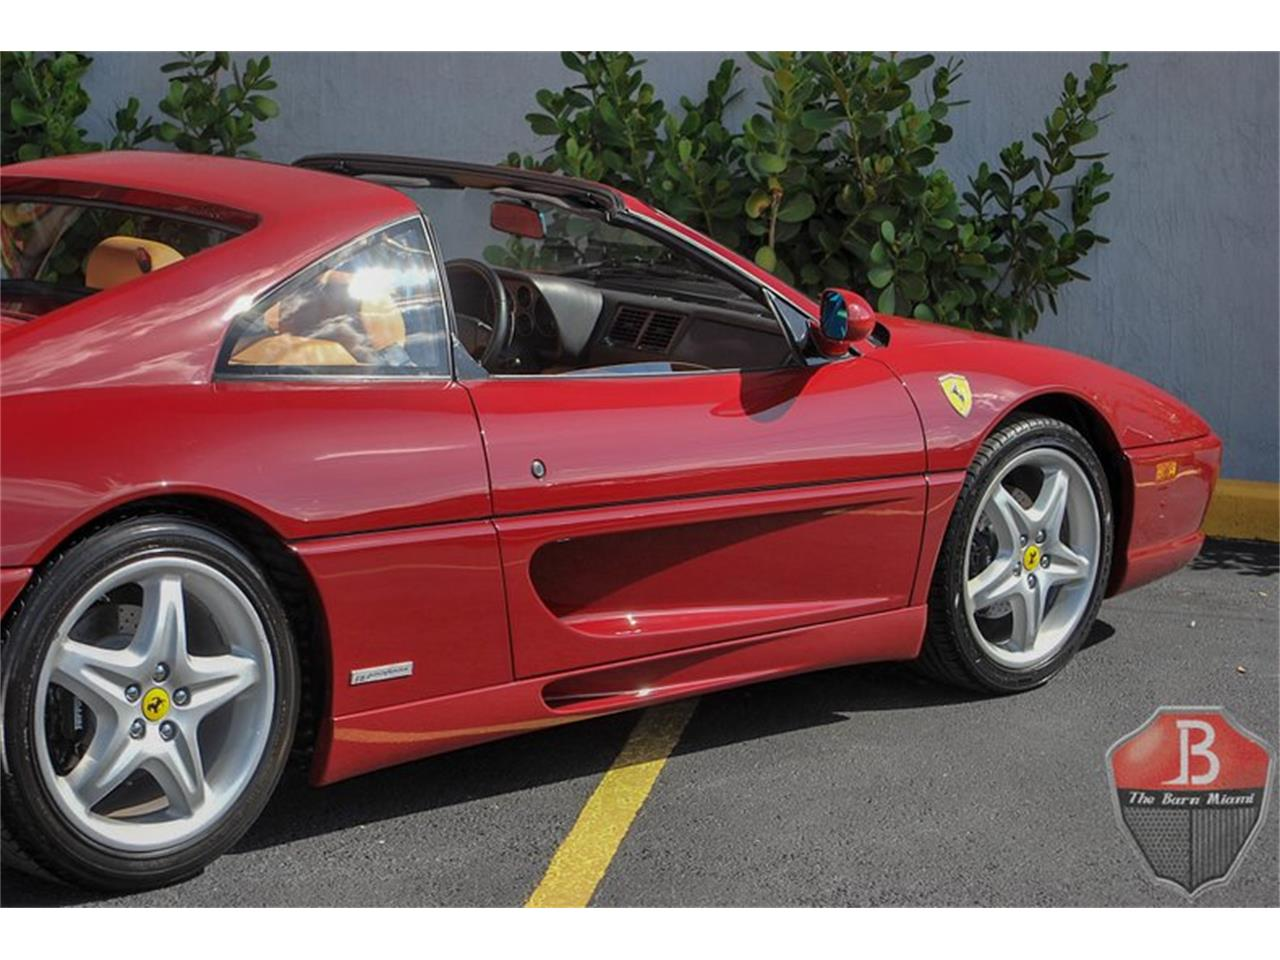 Large Picture of '99 F355 located in Florida - $89,900.00 Offered by The Barn Miami - N6Y8